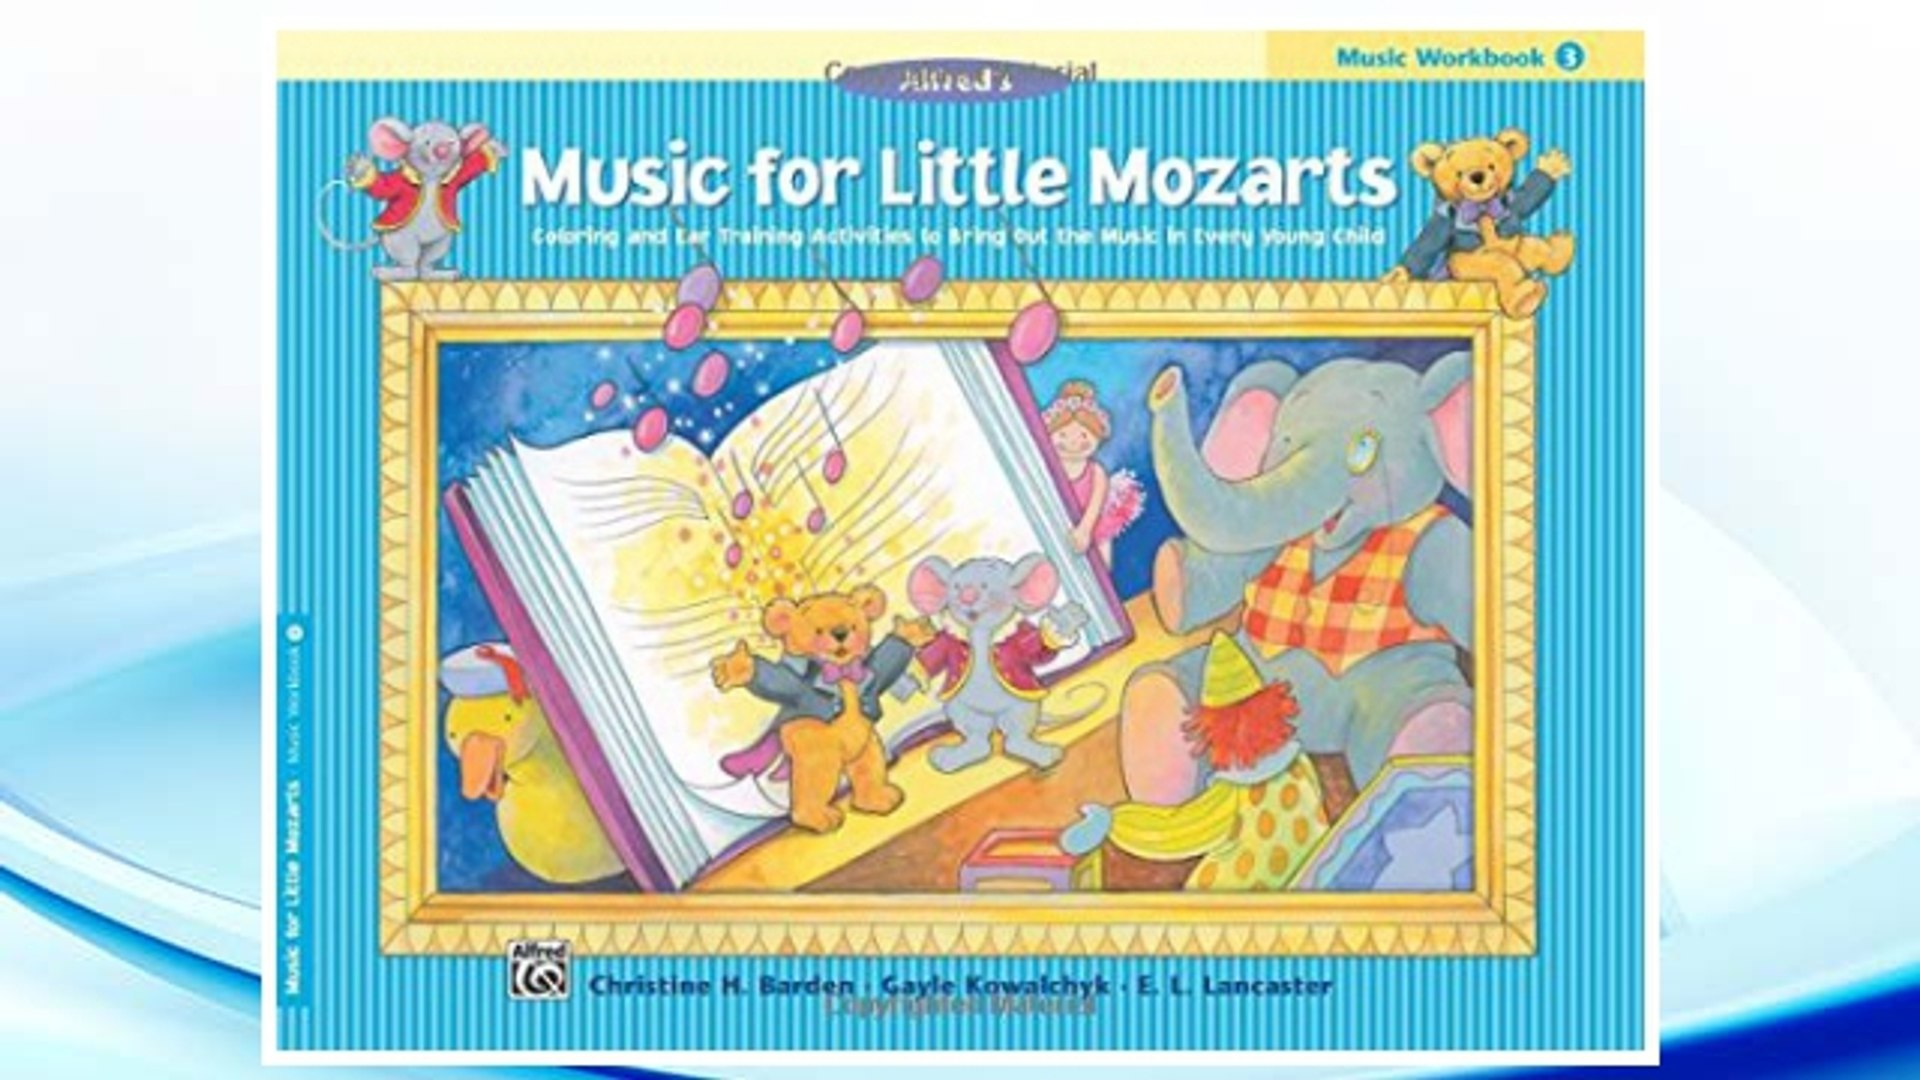 Download PDF Music for Little Mozarts Music Workbook, Bk 3: Coloring and Ear Training Activities to